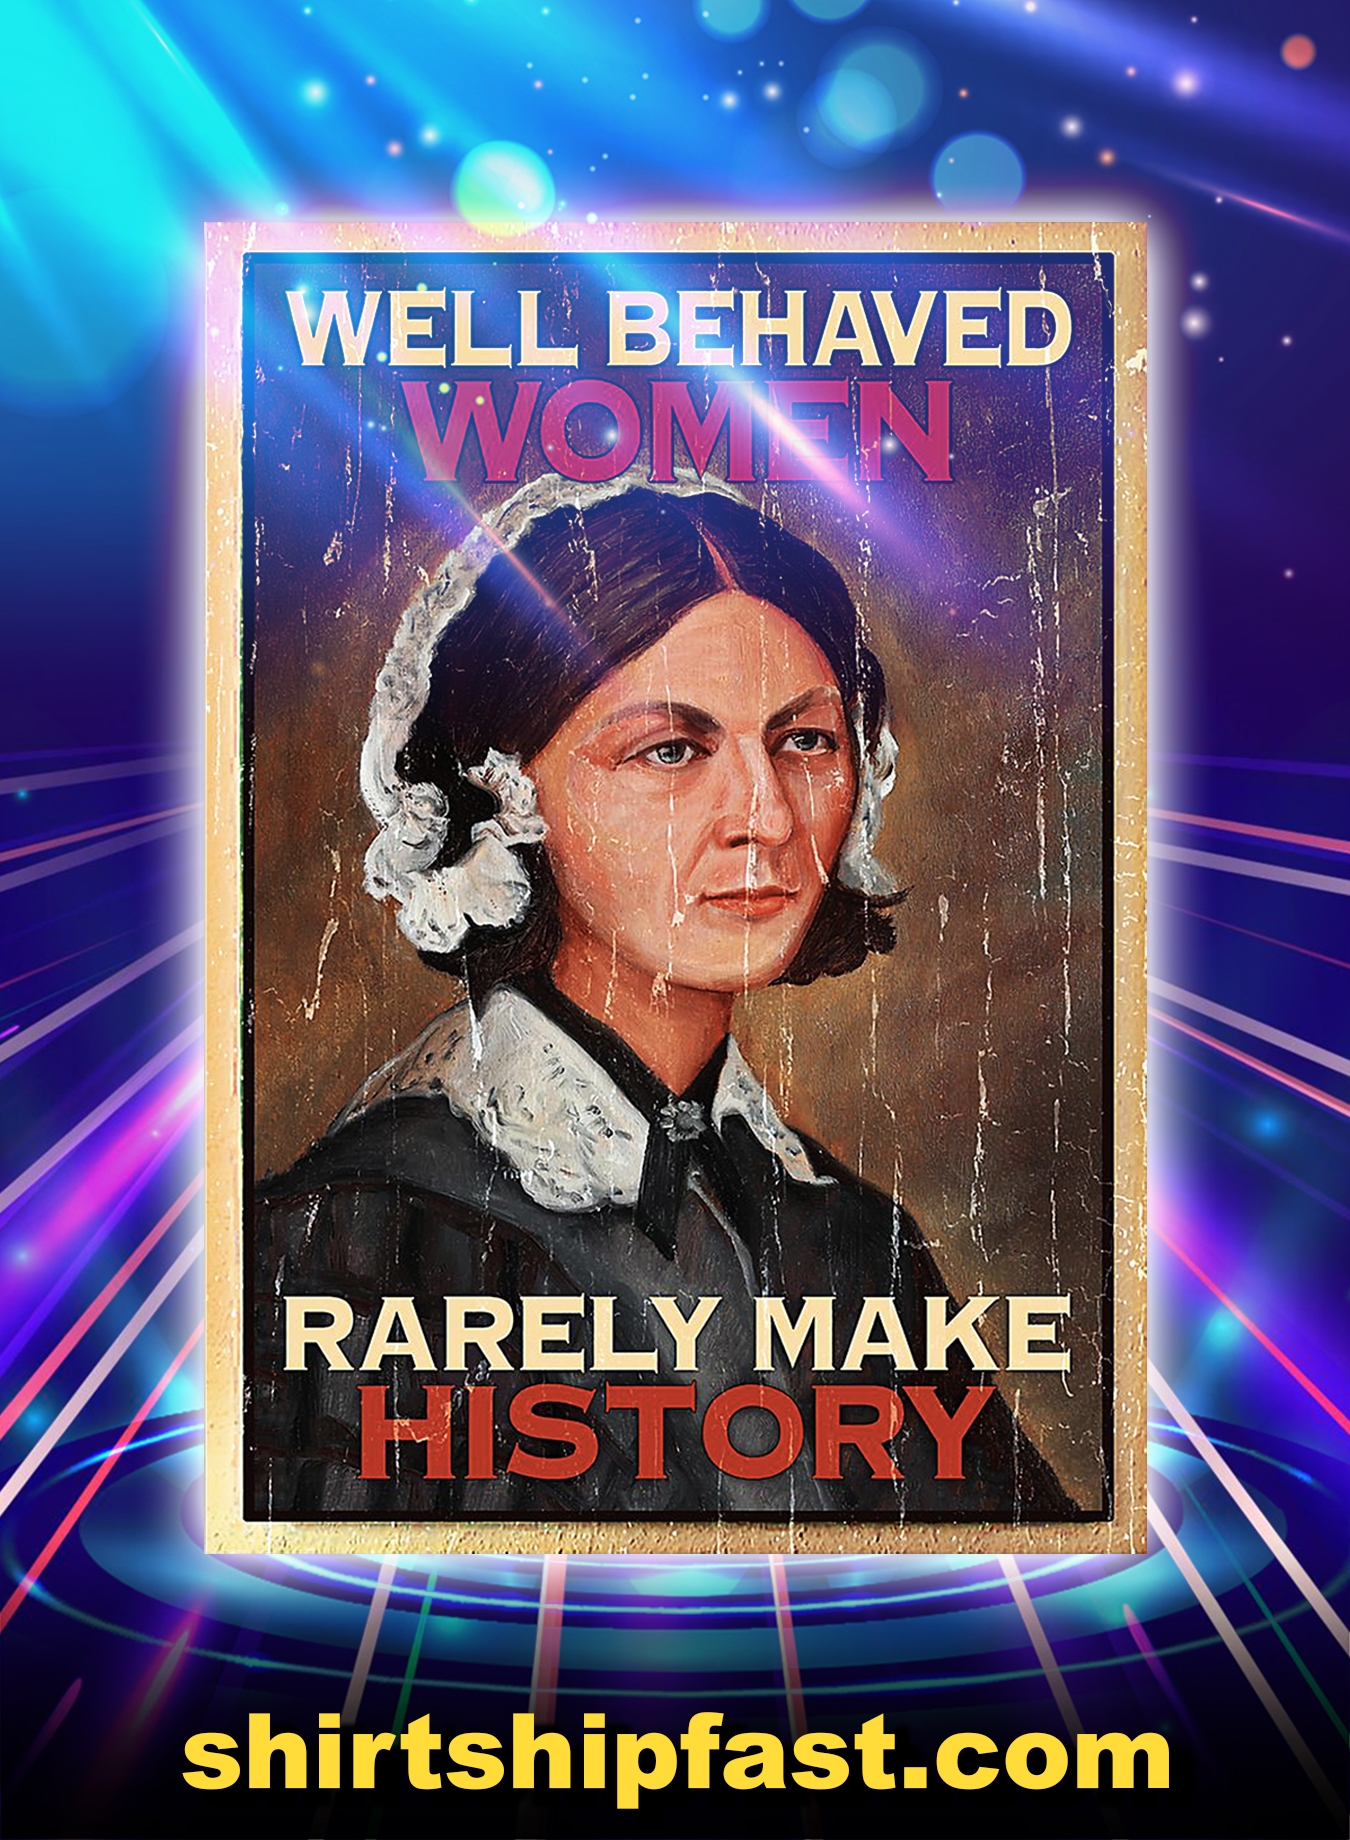 Nurse Well behaved women rarely make history poster - A3